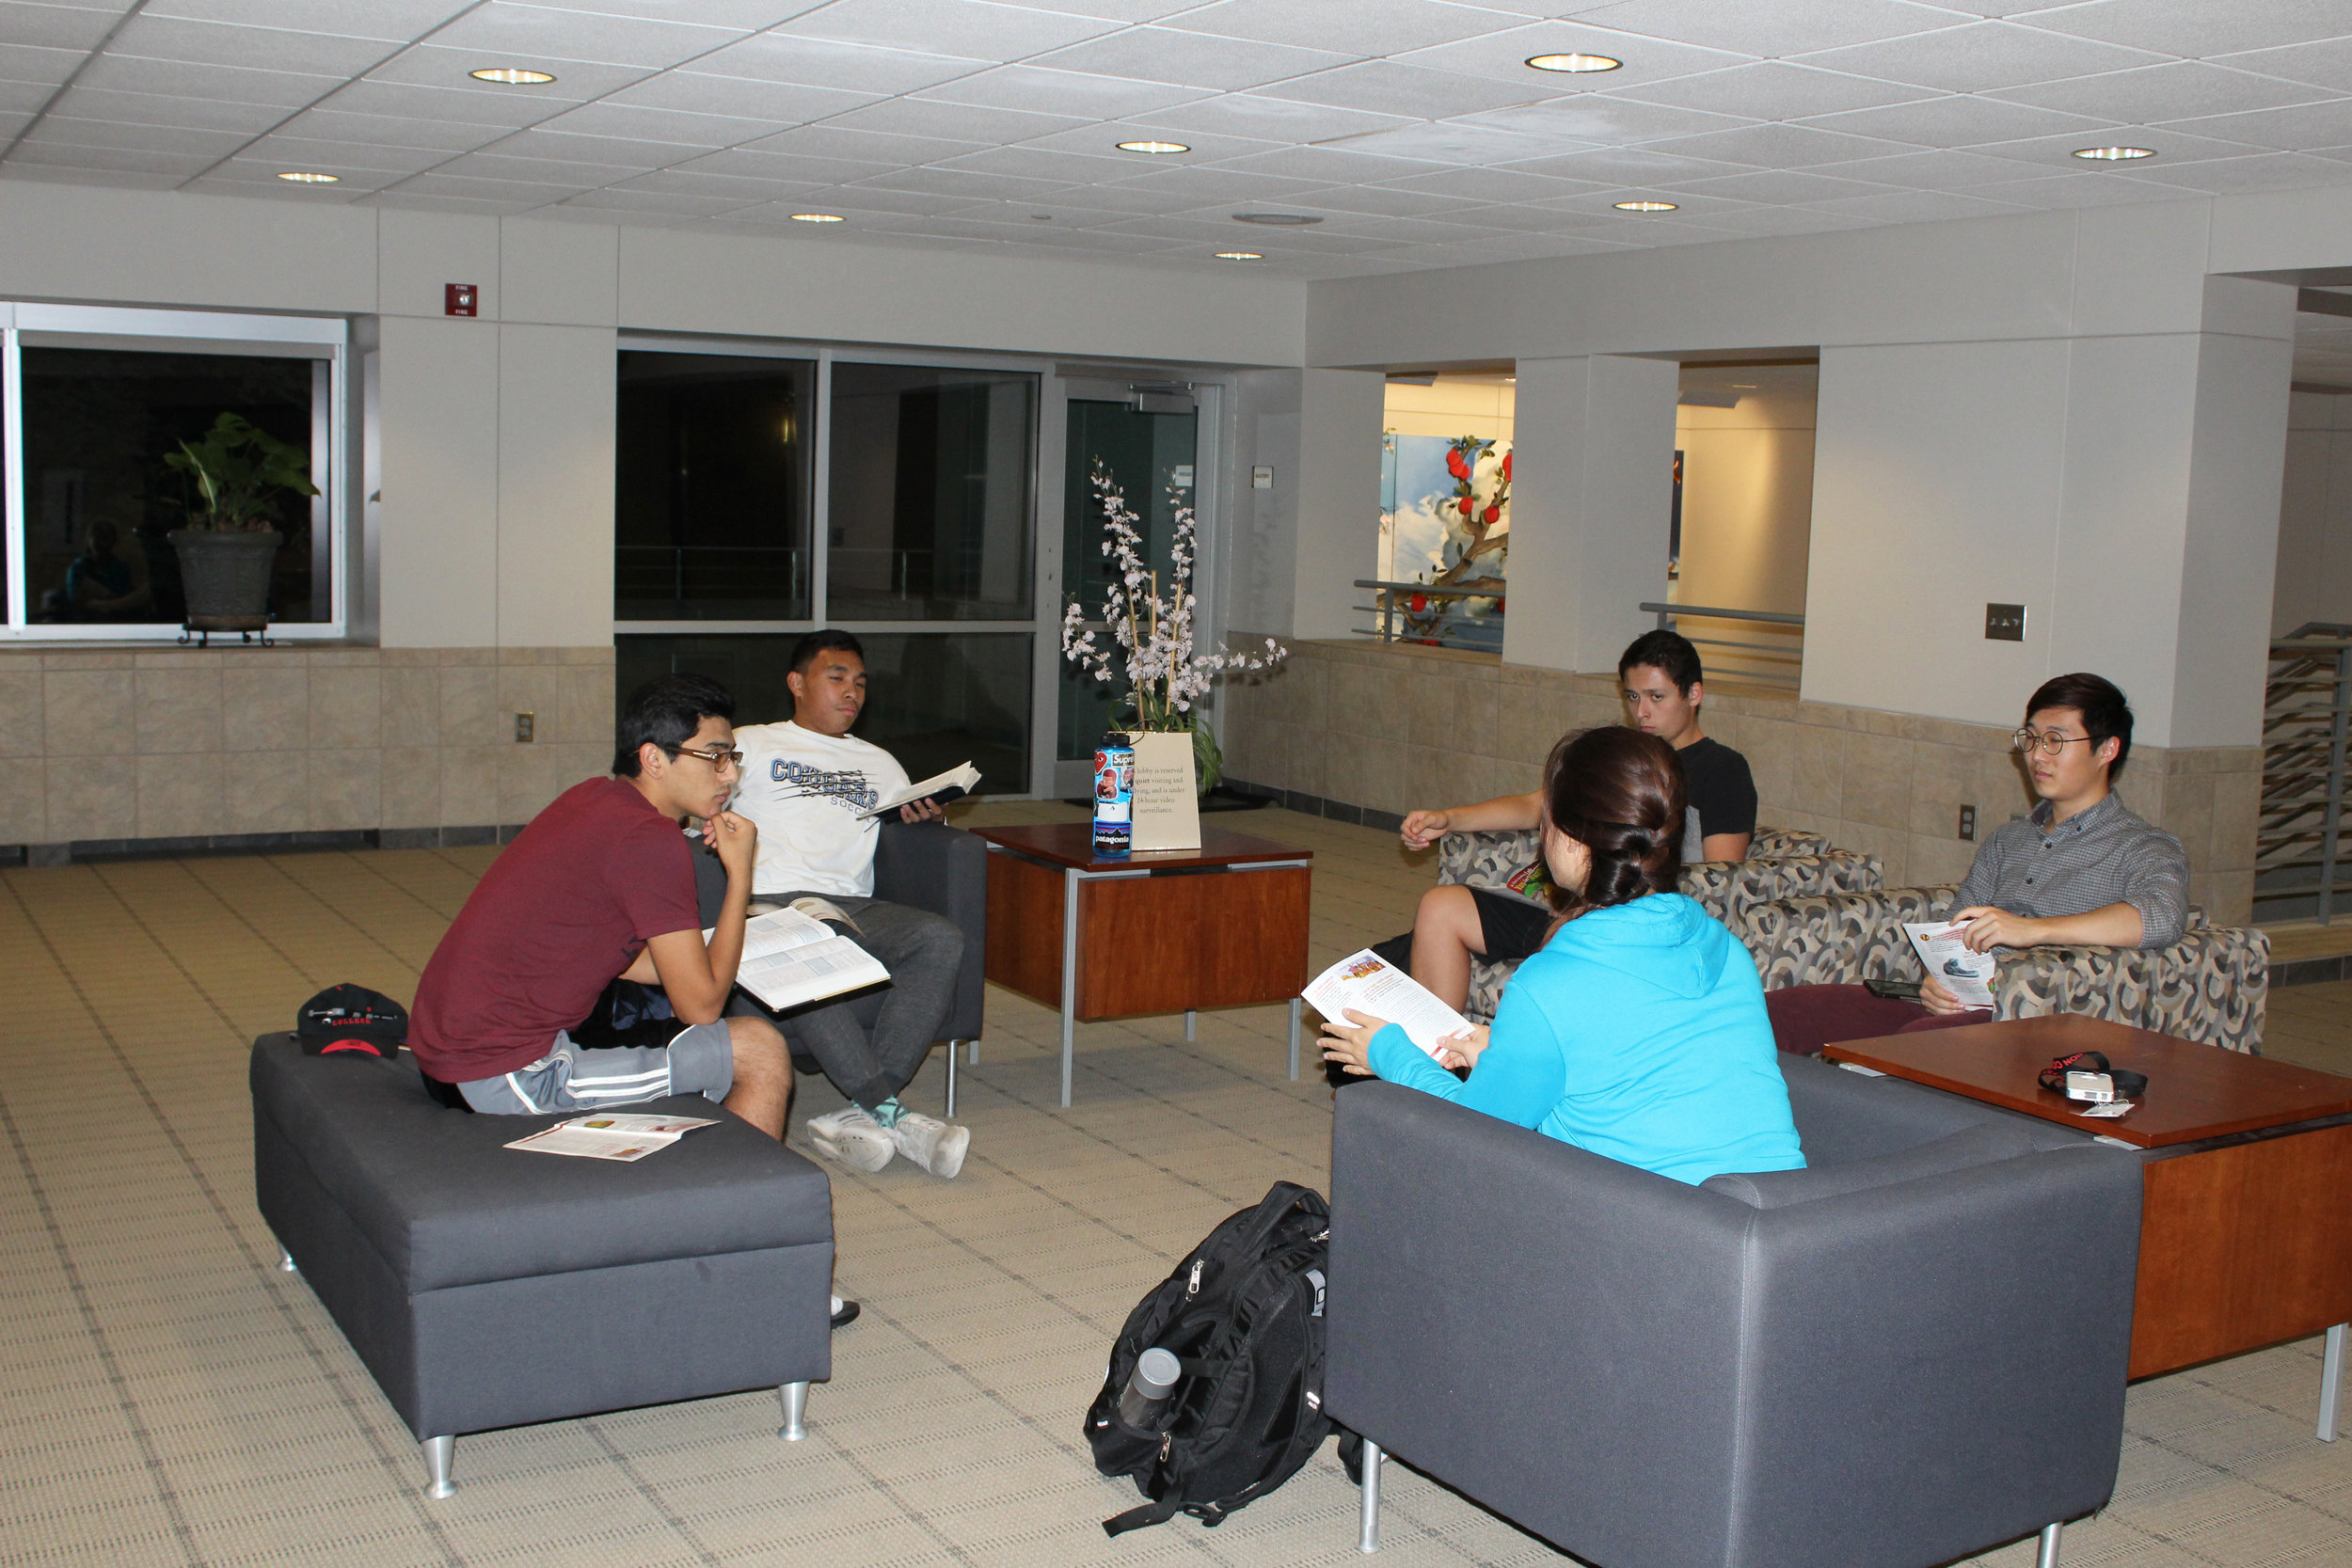 A group of students gather in a small group for Bible study on campus. PC: Kimberly Ortiz